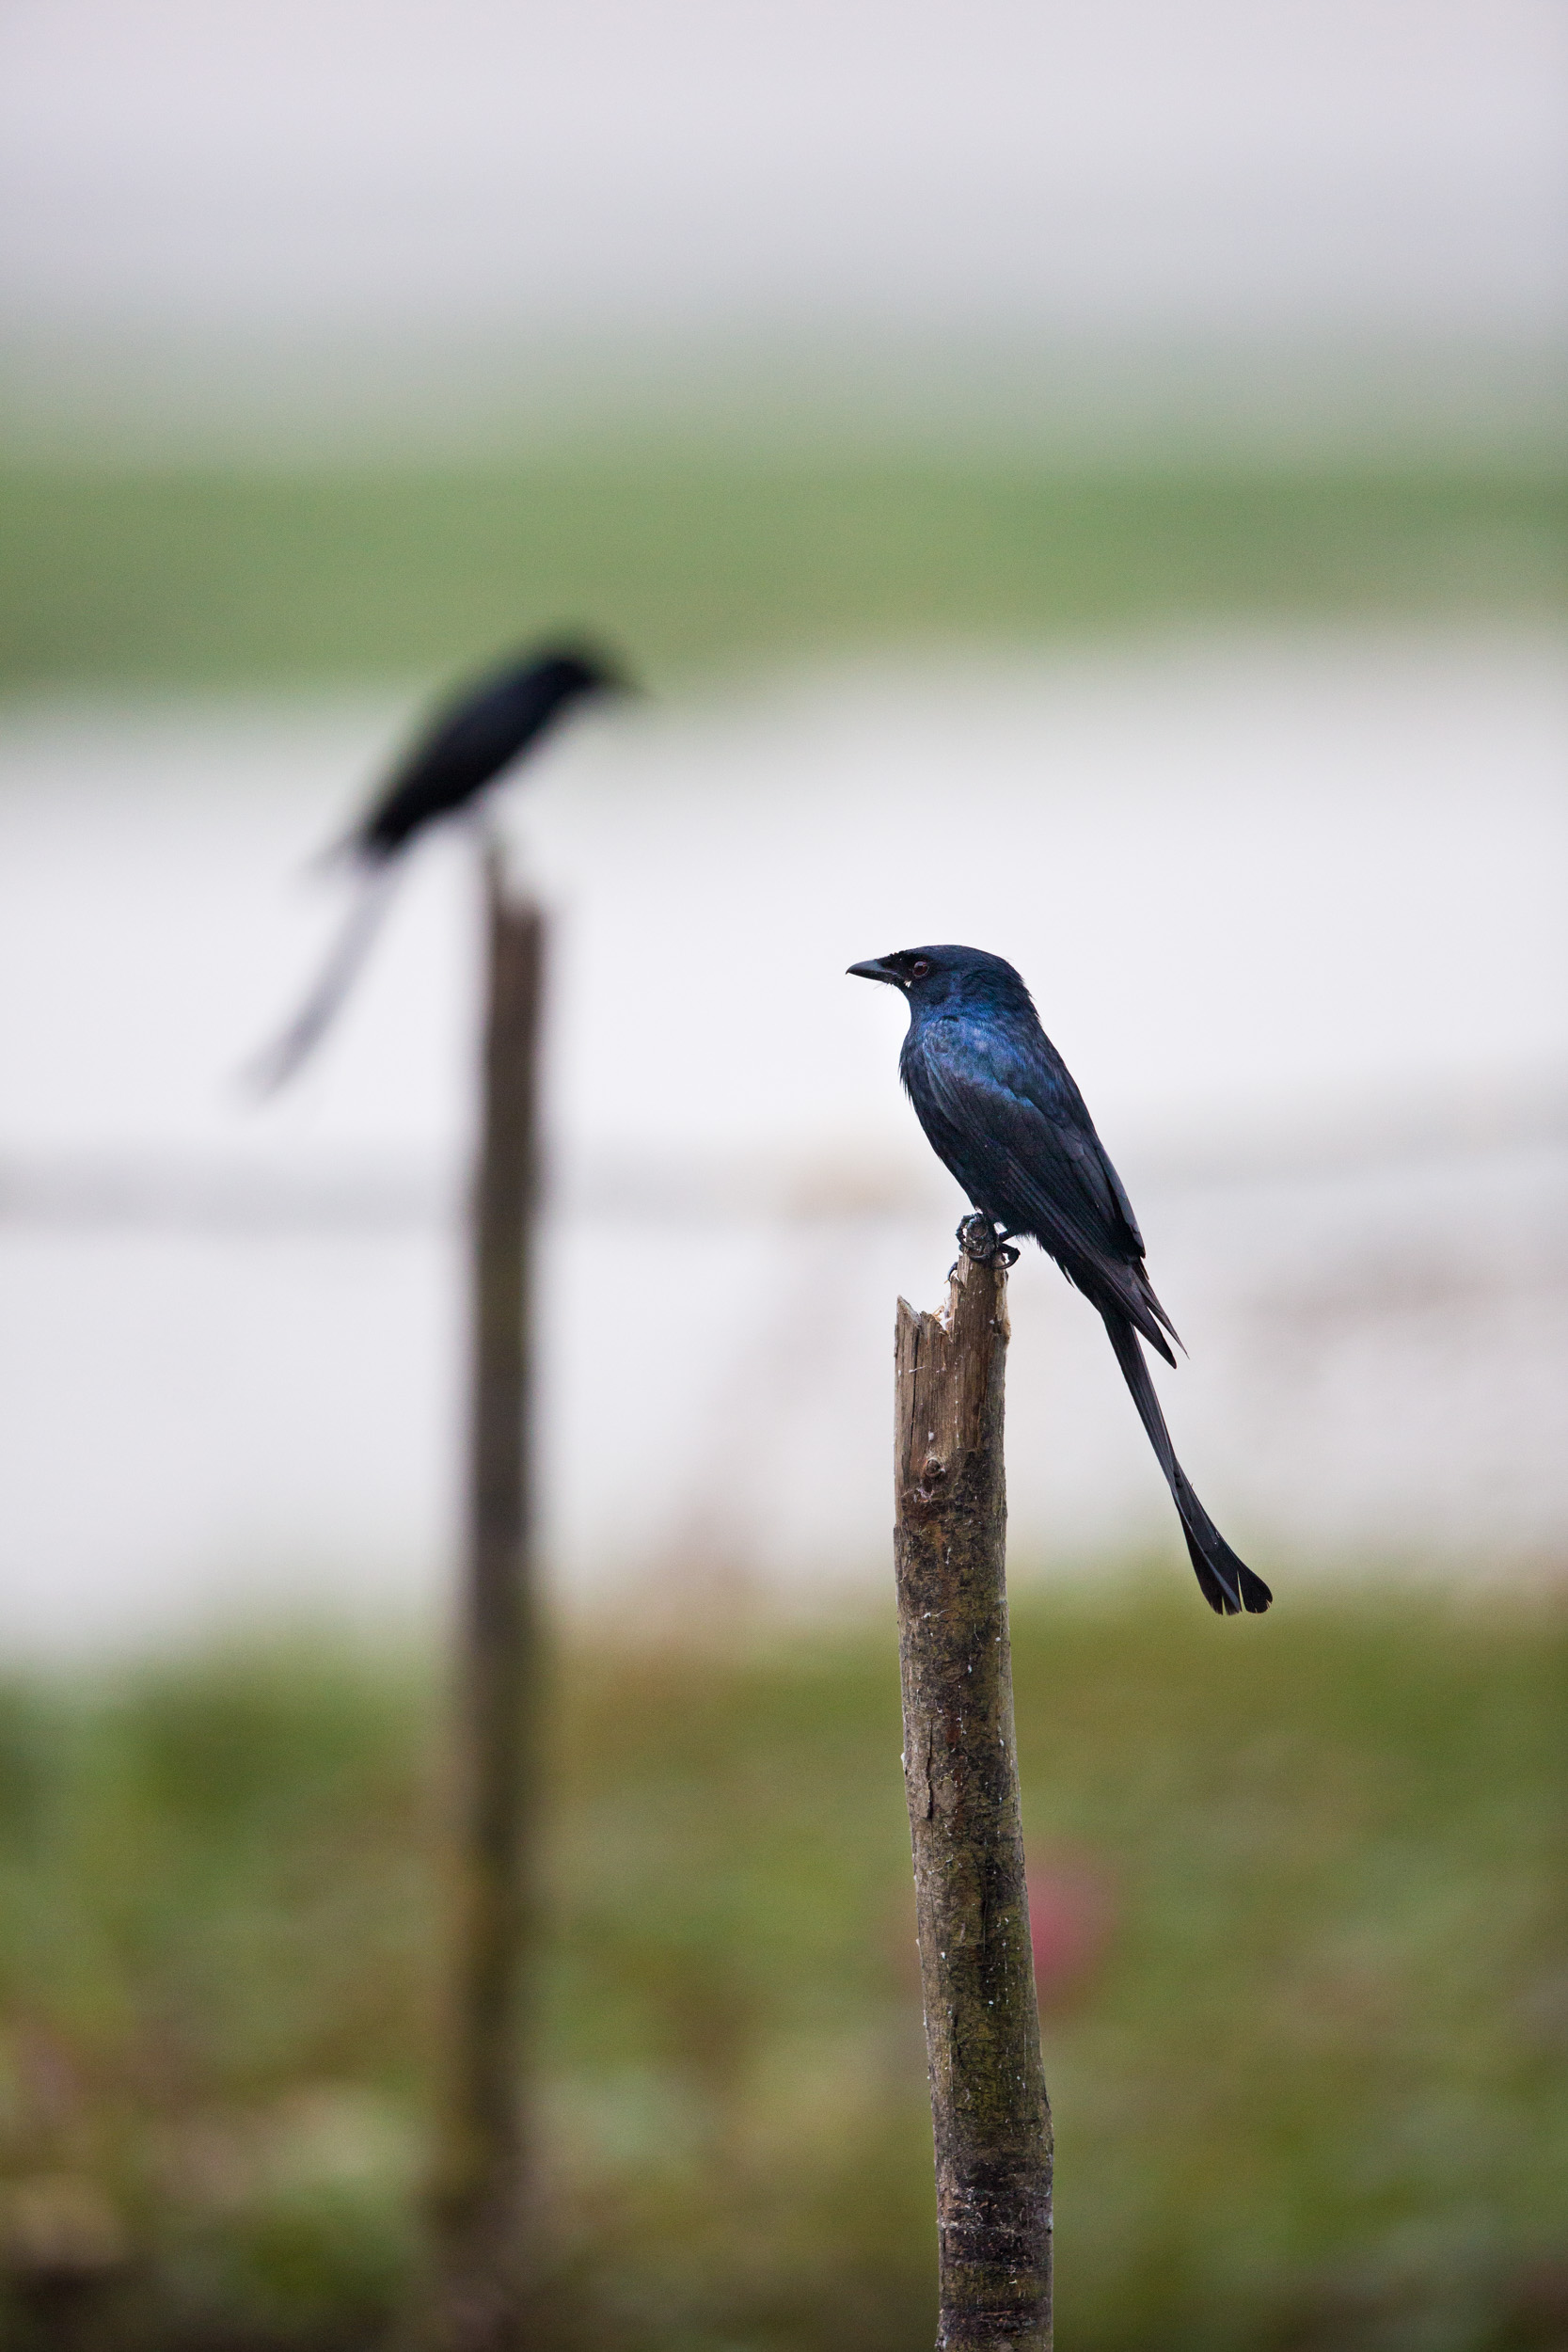 I focused on the stick to get the best focus of the Drongo!